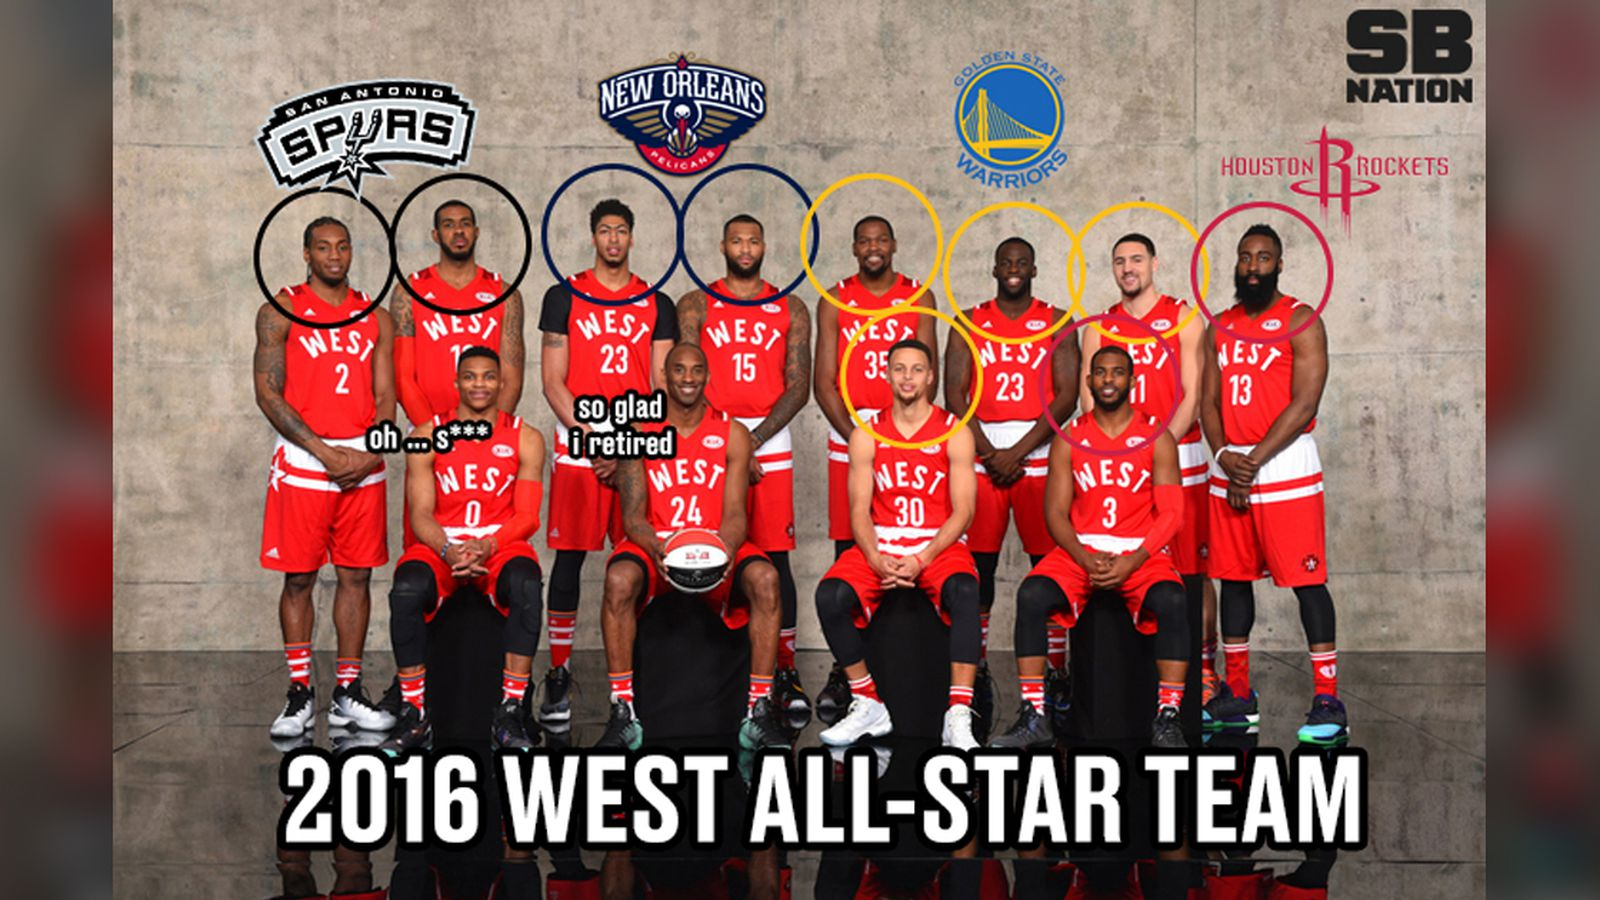 This Nba All Star Photo Eerily Predicted The Western